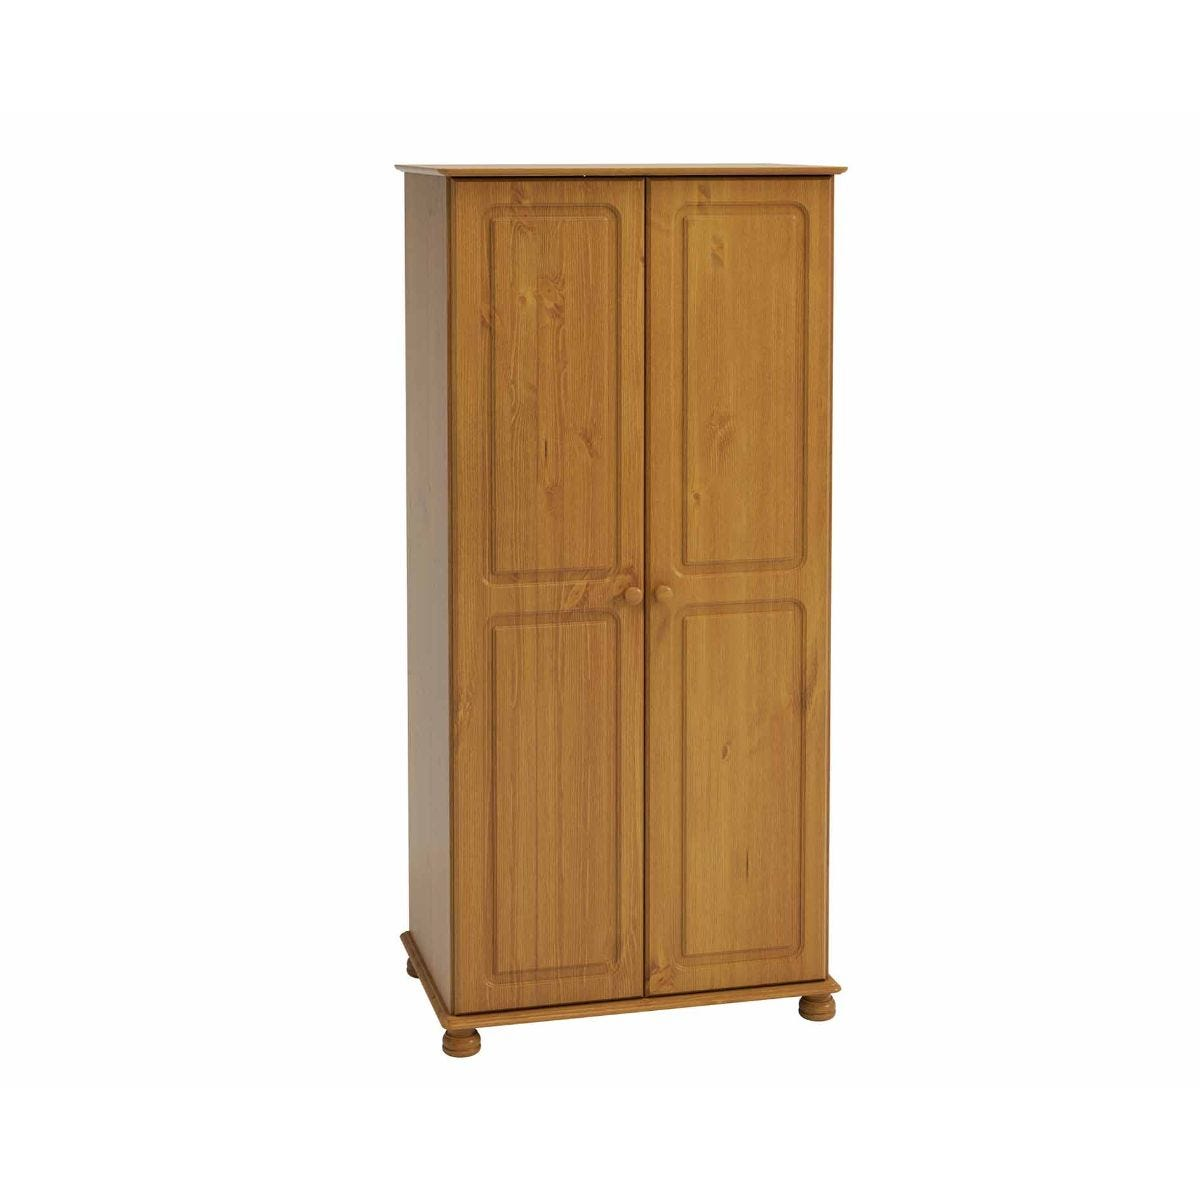 Steens Richmond 2 Door Wardrobe, Pine